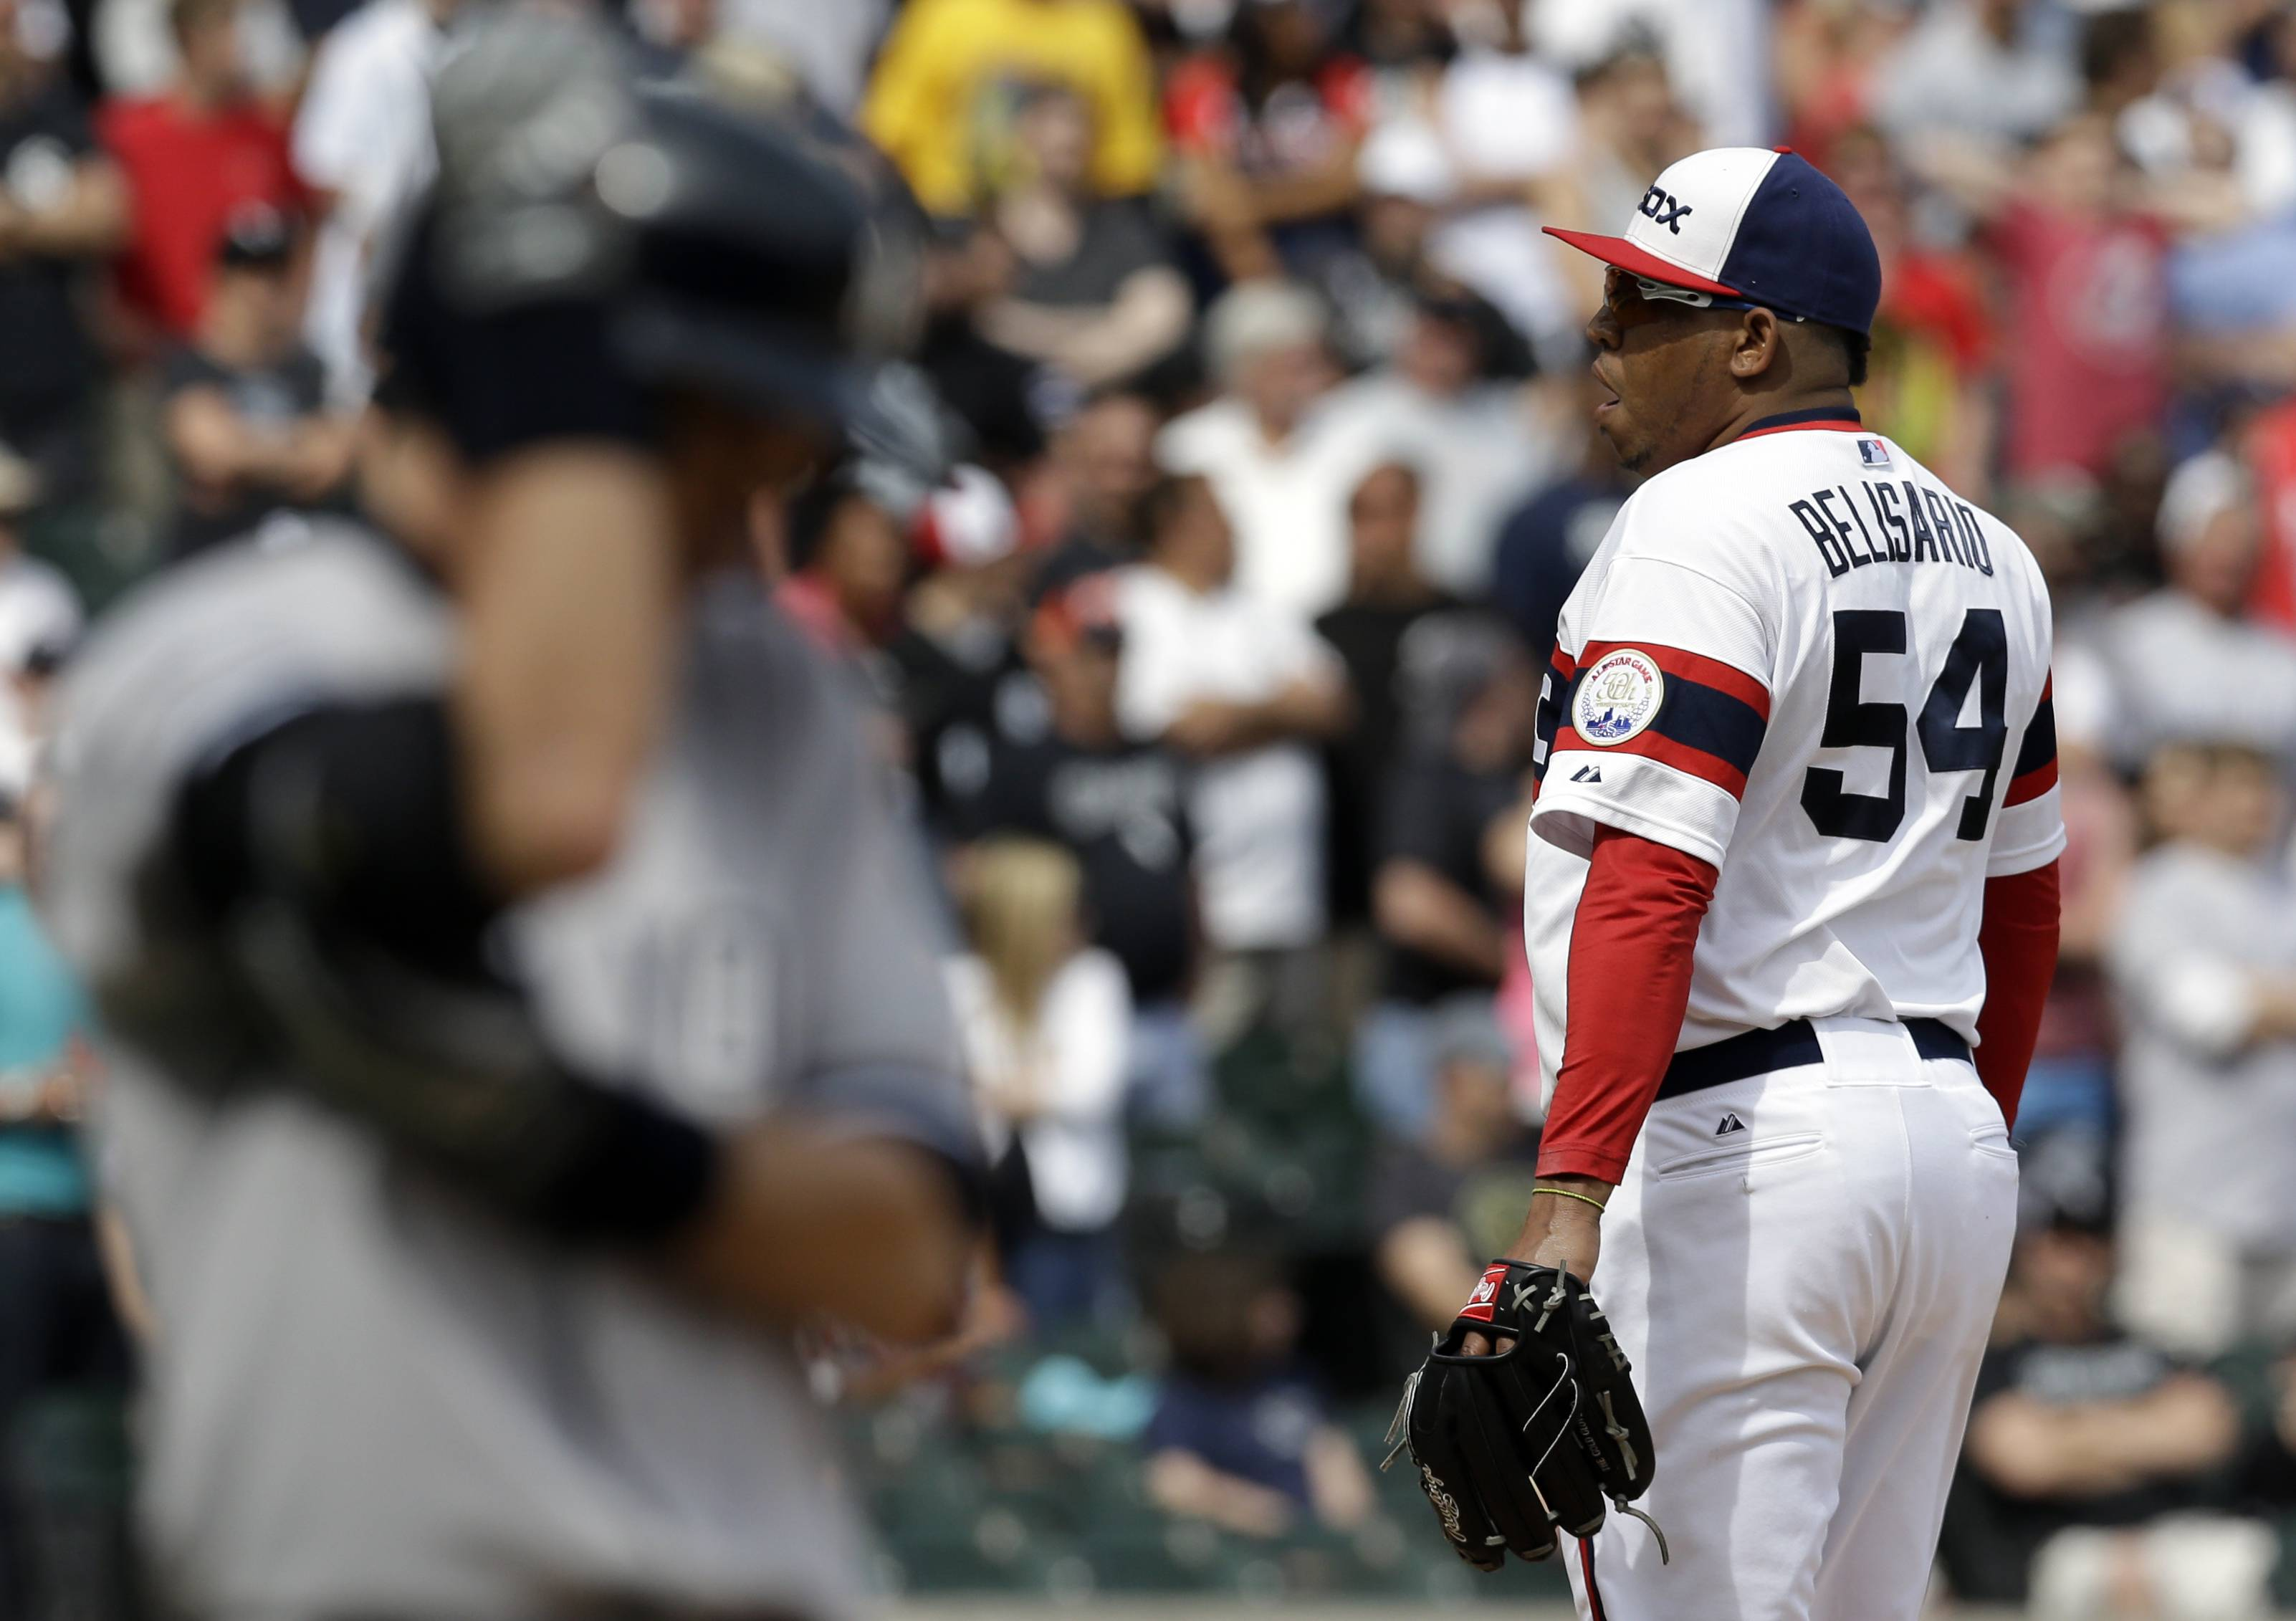 White Sox closer Ronald Belisario reacts during Saturday's blown safe, when the Yankees scored 3 runs in the ninth inning and won in the 10th. Sox manager Robin Ventura said Sunday he is sticking with Belisario as his closer.